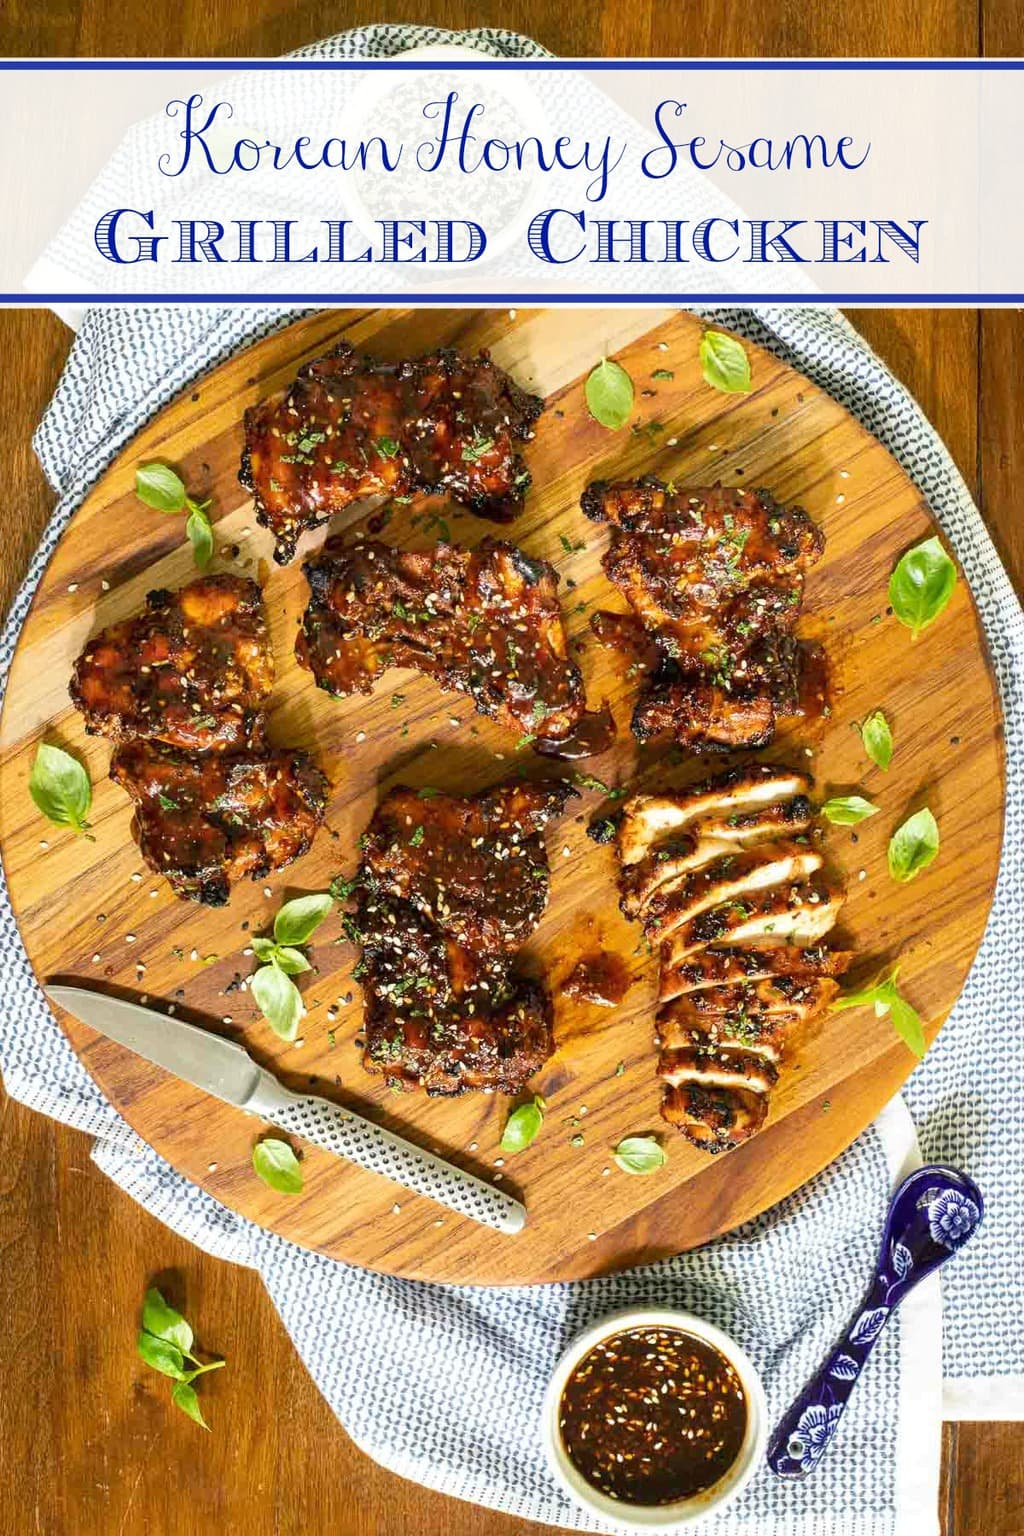 Korean Honey Sesame Grilled Chicken